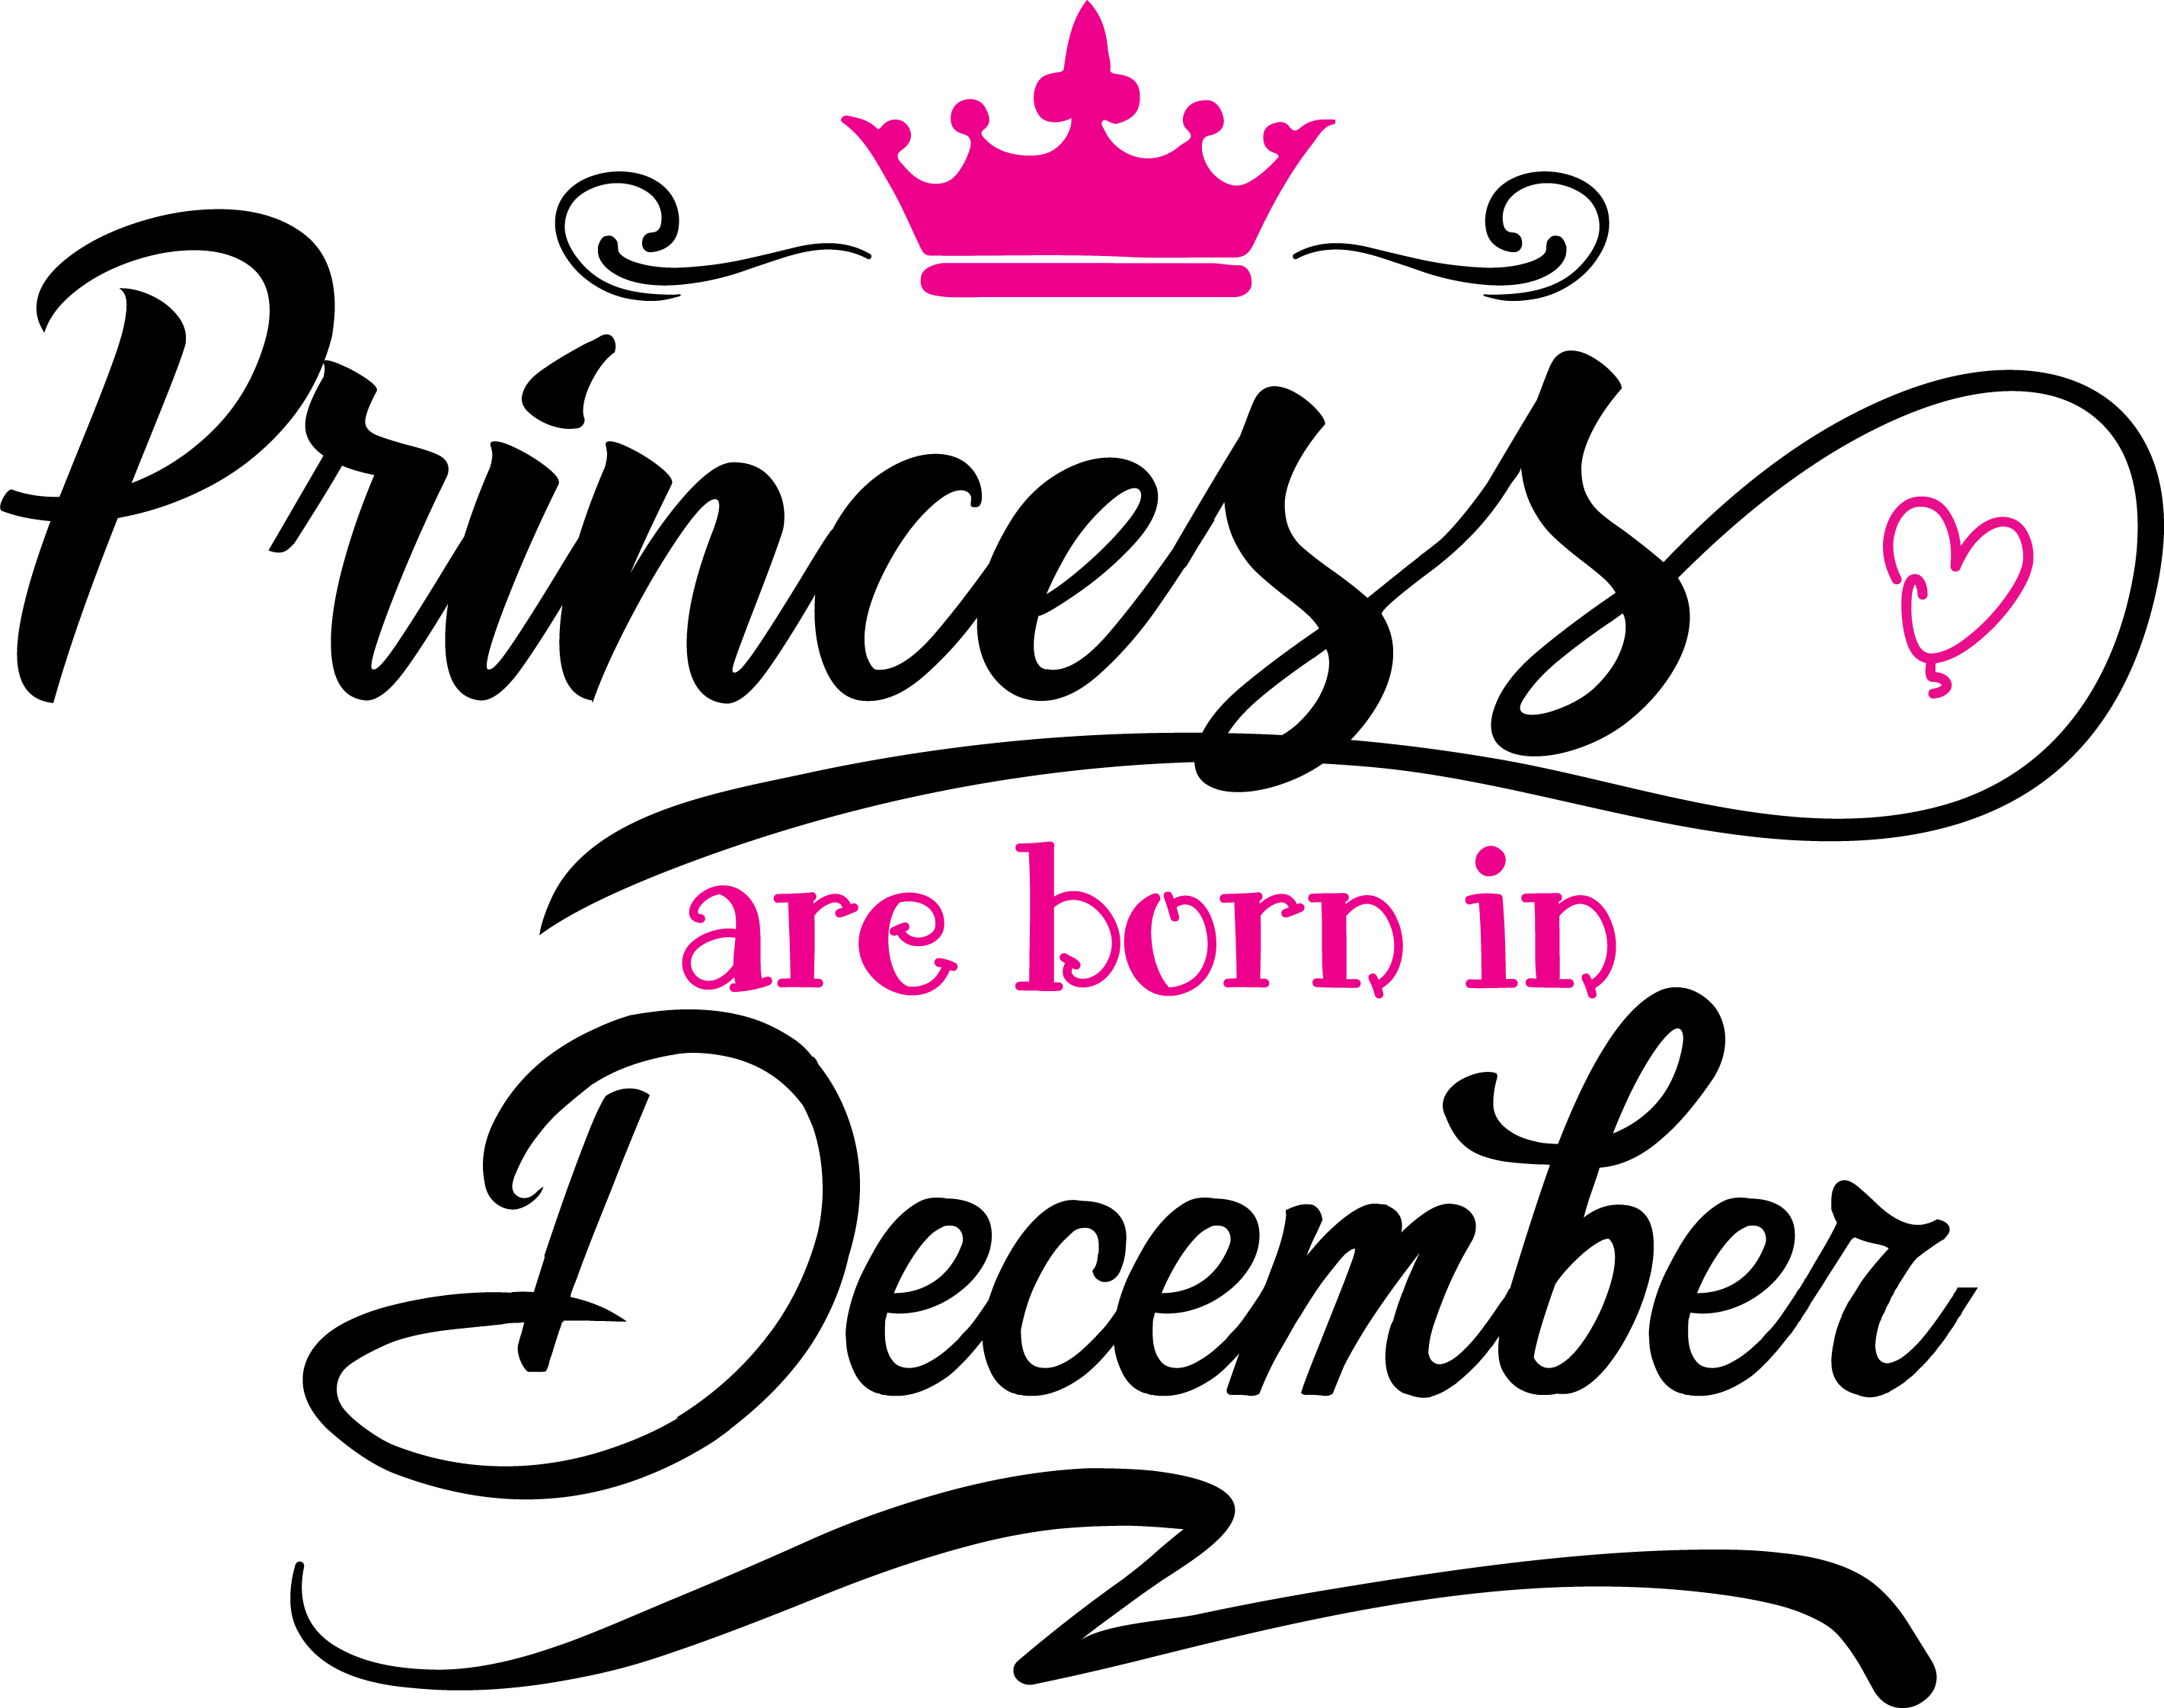 Princess are born in December  Svg,Dxf,Png,Jpg,Eps vector file example image 2